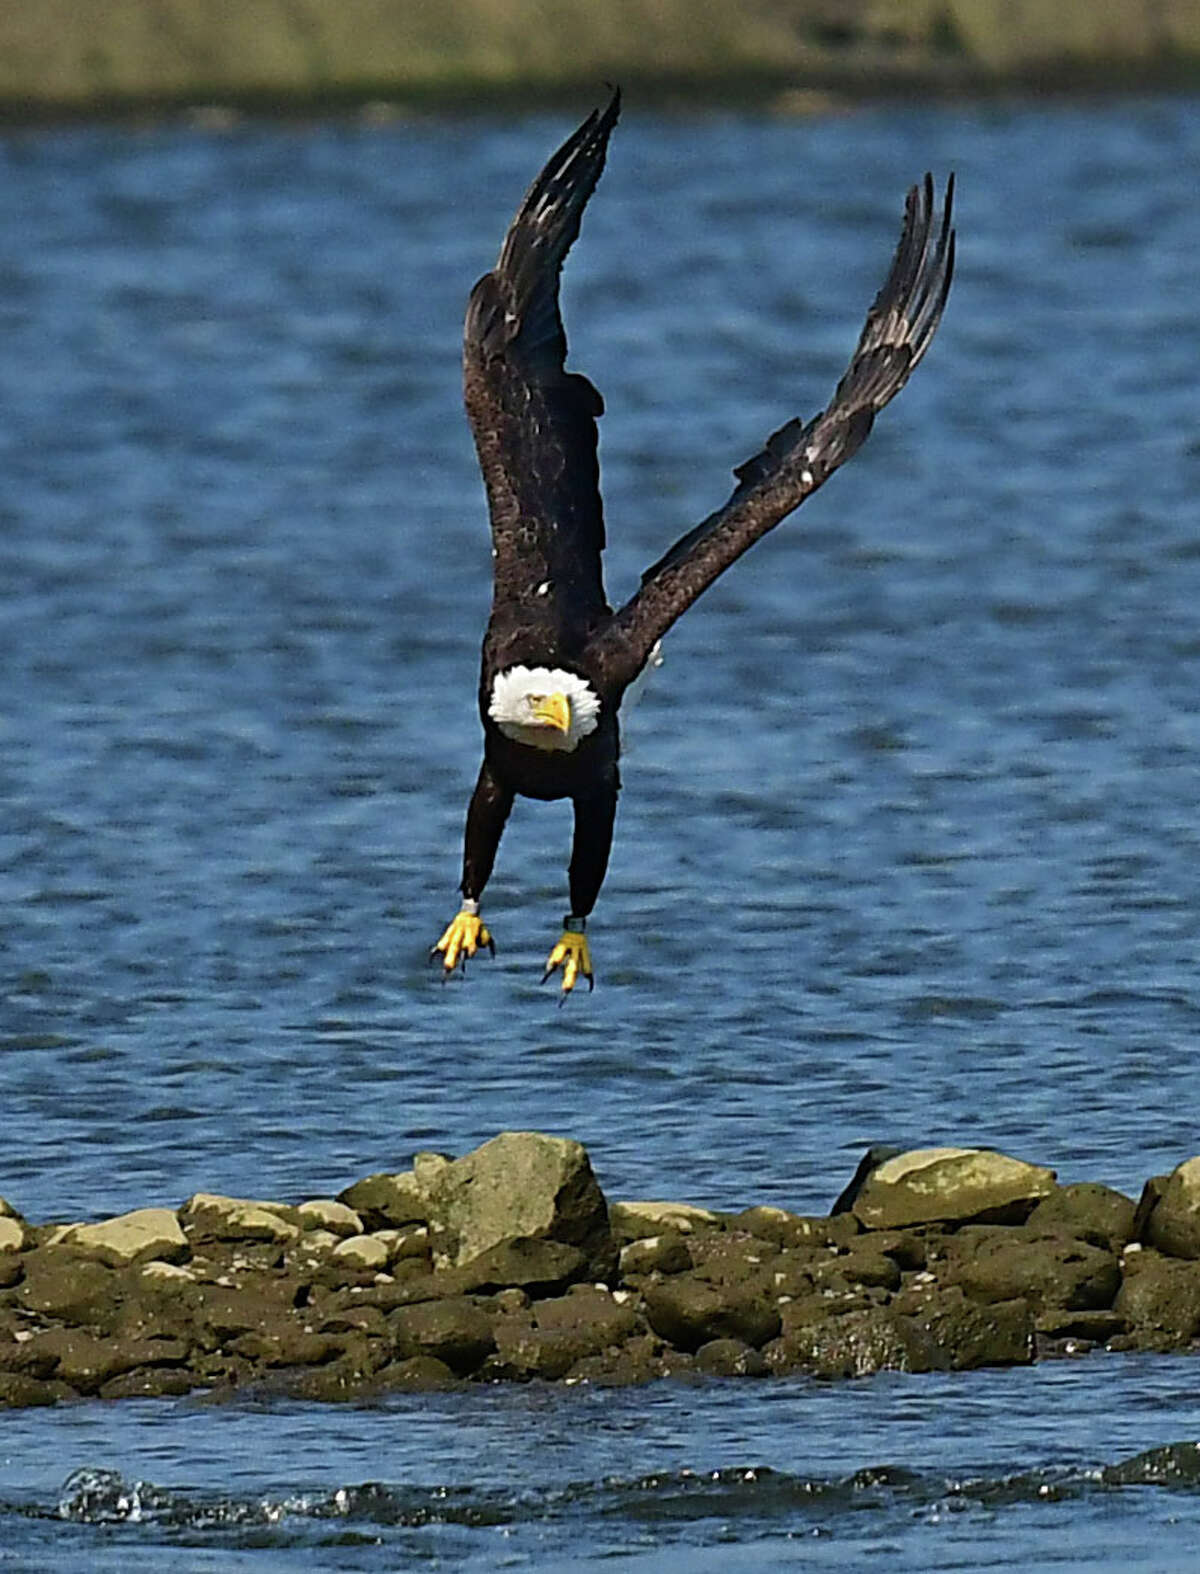 A bald eagle looking for food is seen taking off from a group of rocks on the Hudson River on Friday, Aug. 14, 2020 in Troy, N.Y. (Lori Van Buren/Times Union)